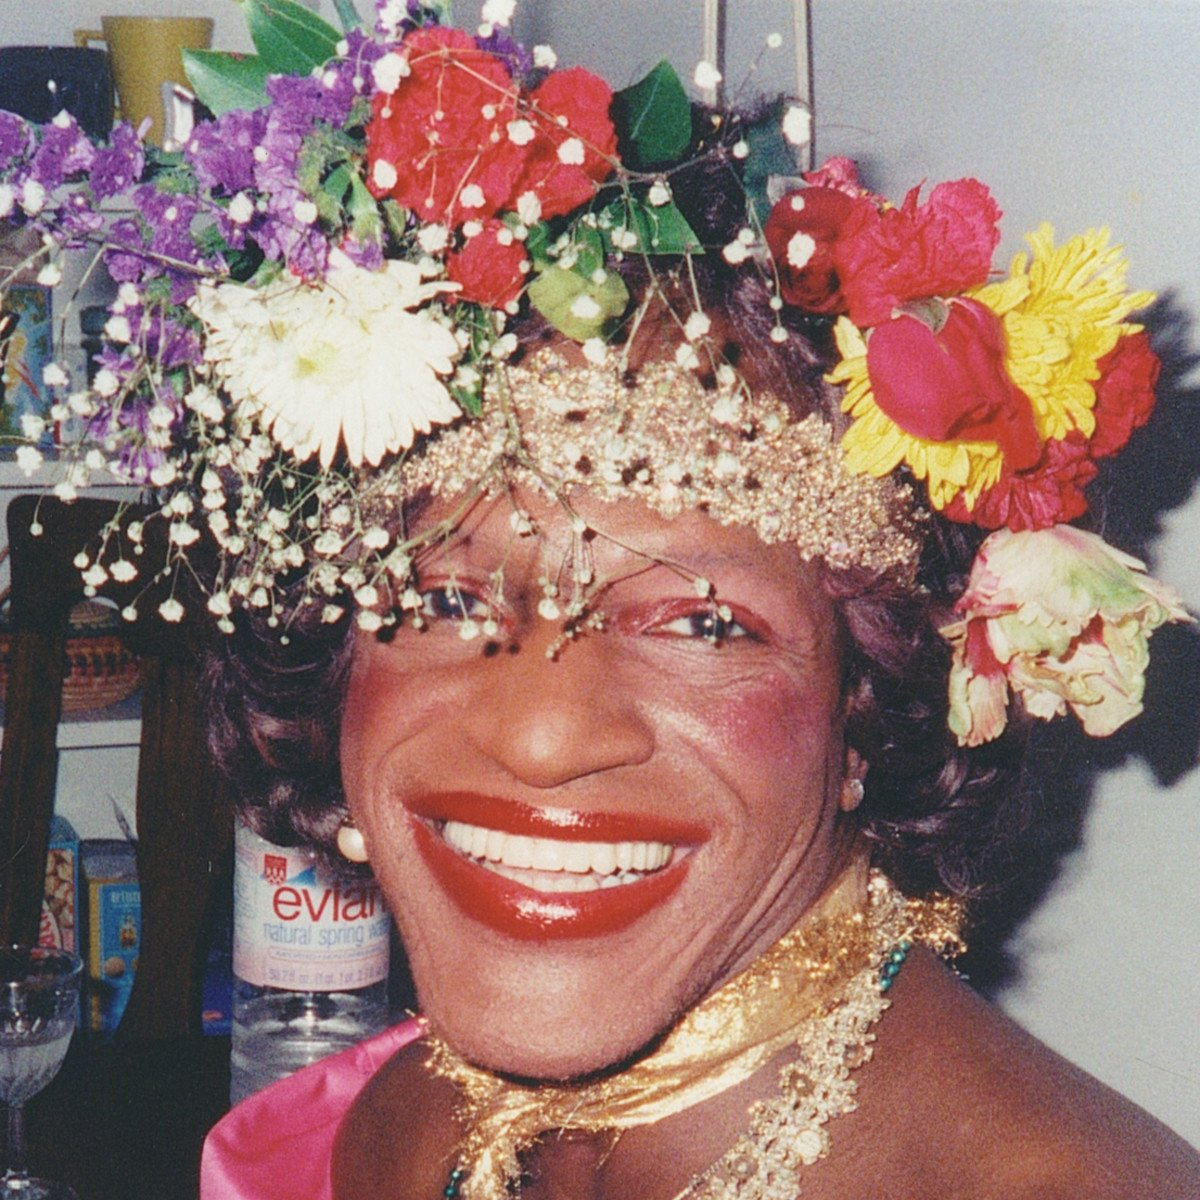 (1/2) Marsha P. Johnson is recognized today as one of the leading figures of the LGBT rights movement in the U.S., primarily for her role during the Stonewall riots and her activism as a founding member of Street Transvestites Action Revolutionaries (STAR) and <br>http://pic.twitter.com/T3mQyLC1oV